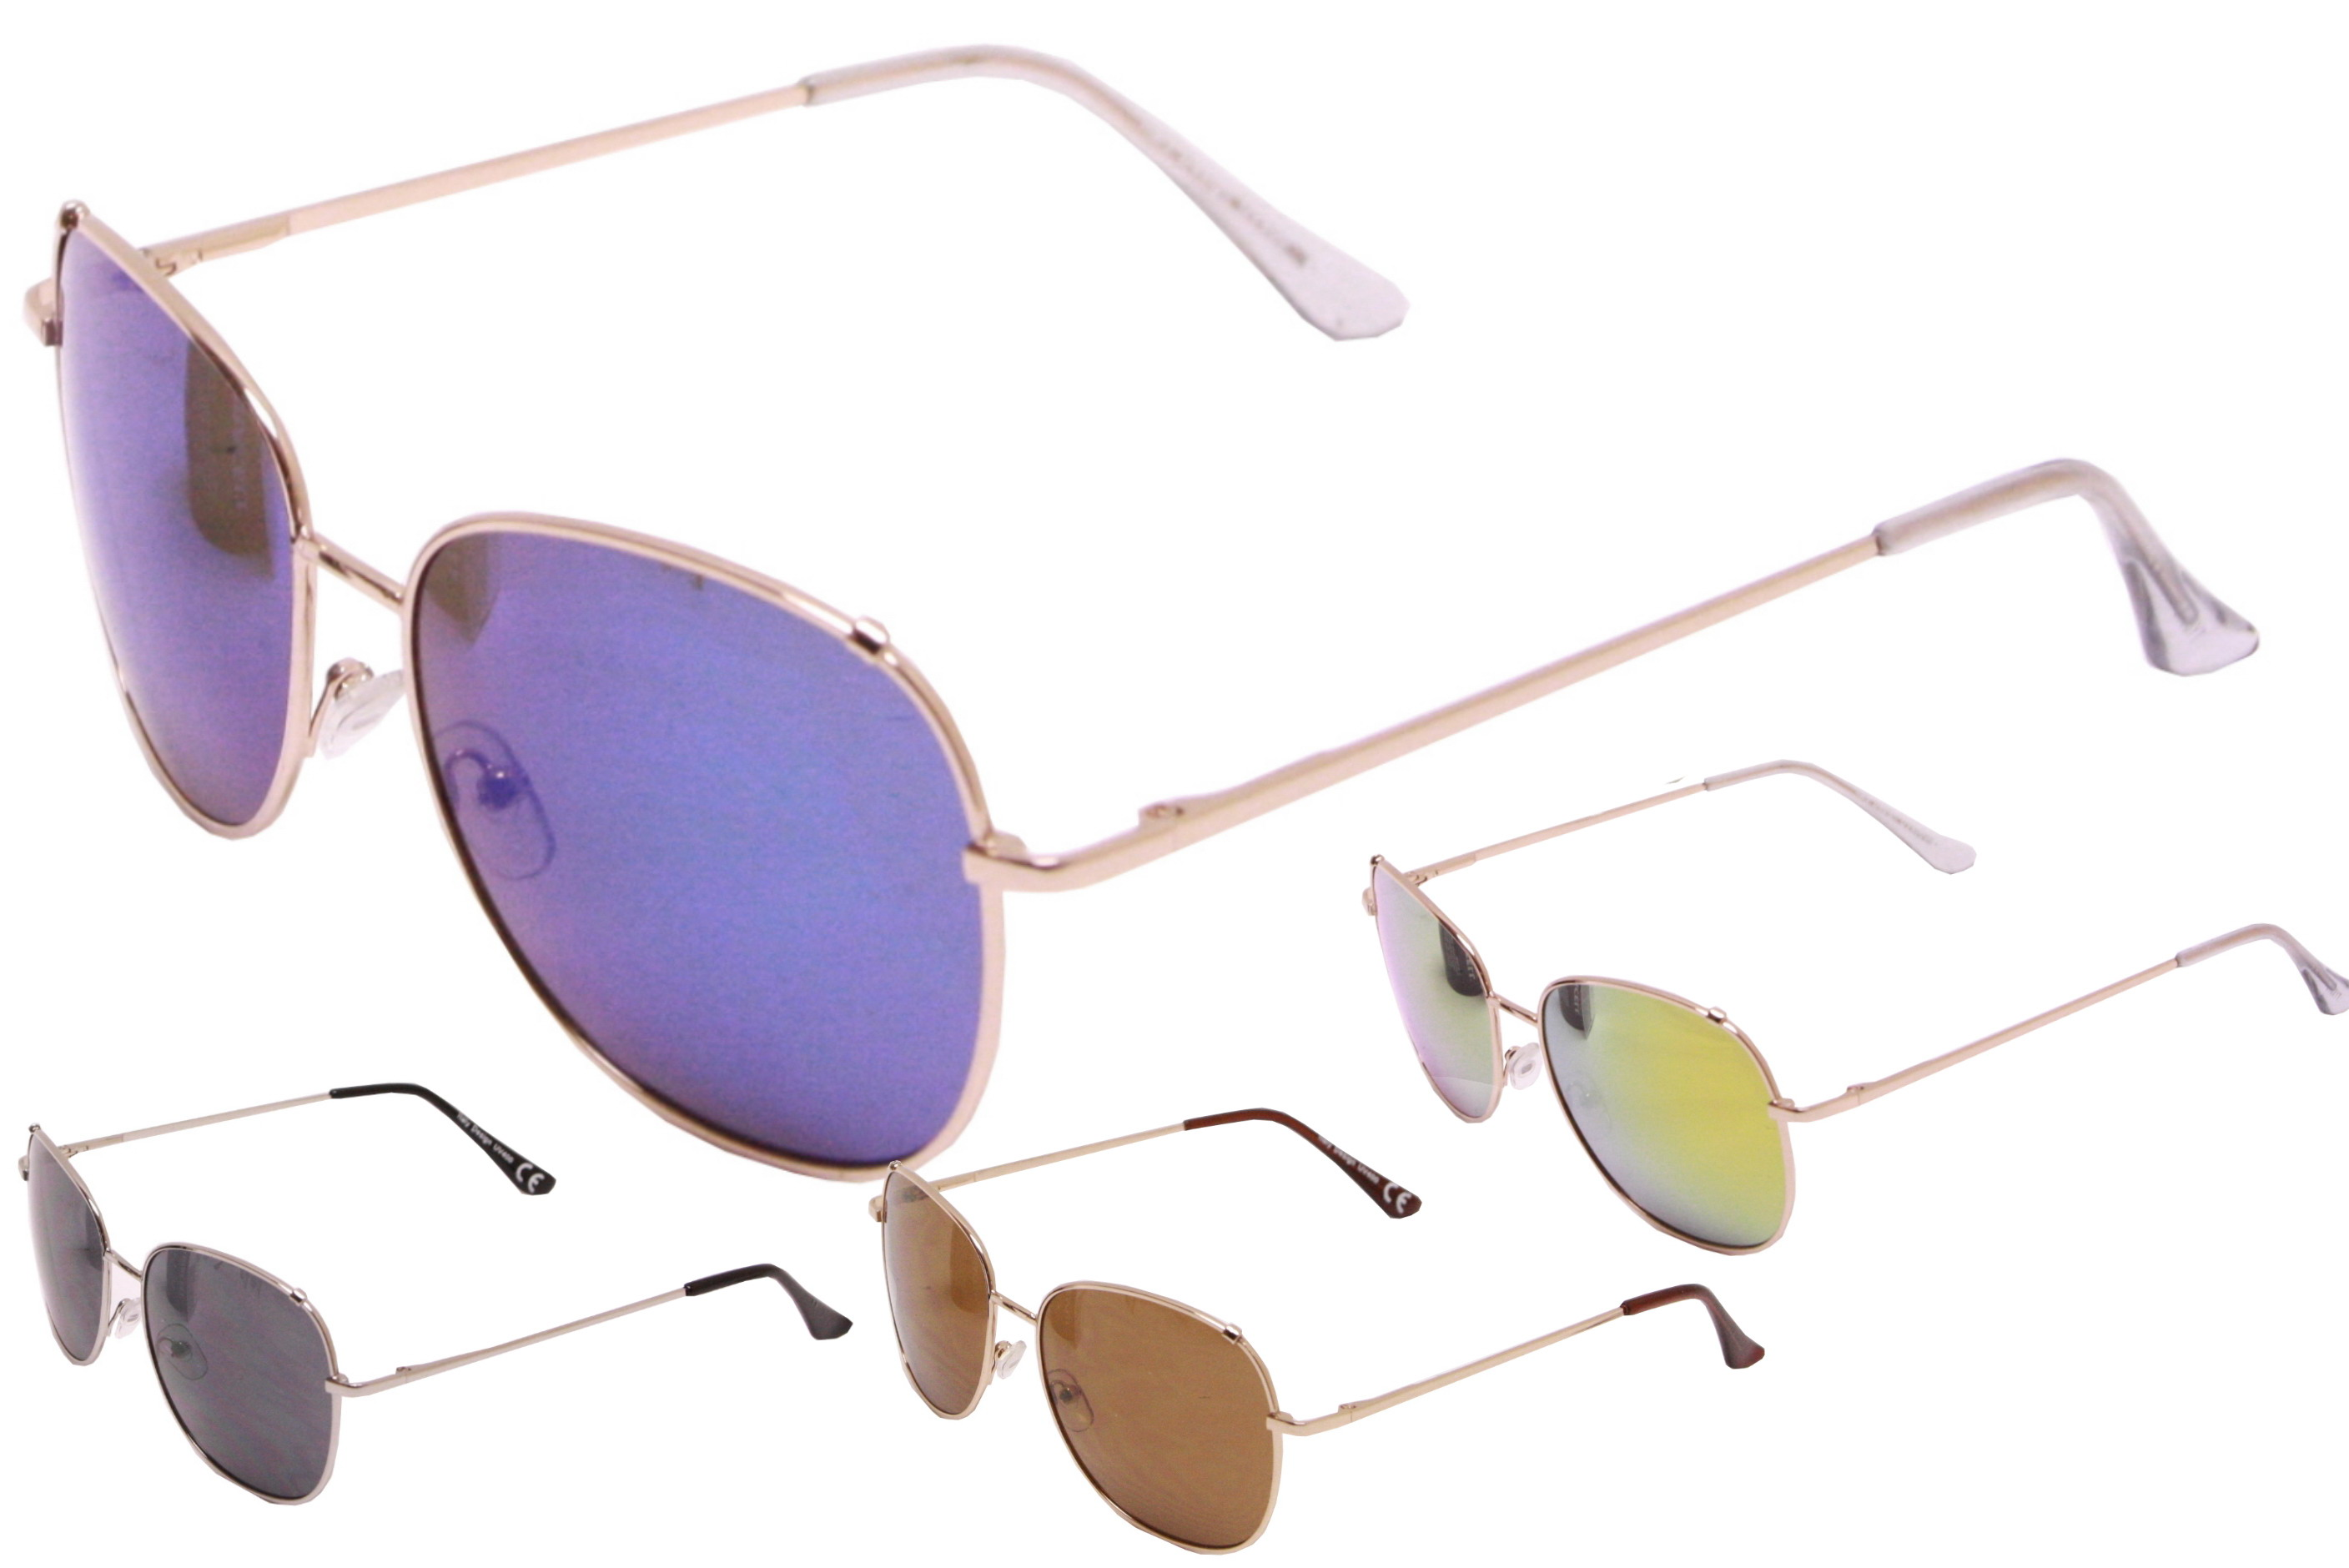 Adult Metal Frame Sunglasses - 4 Assorted